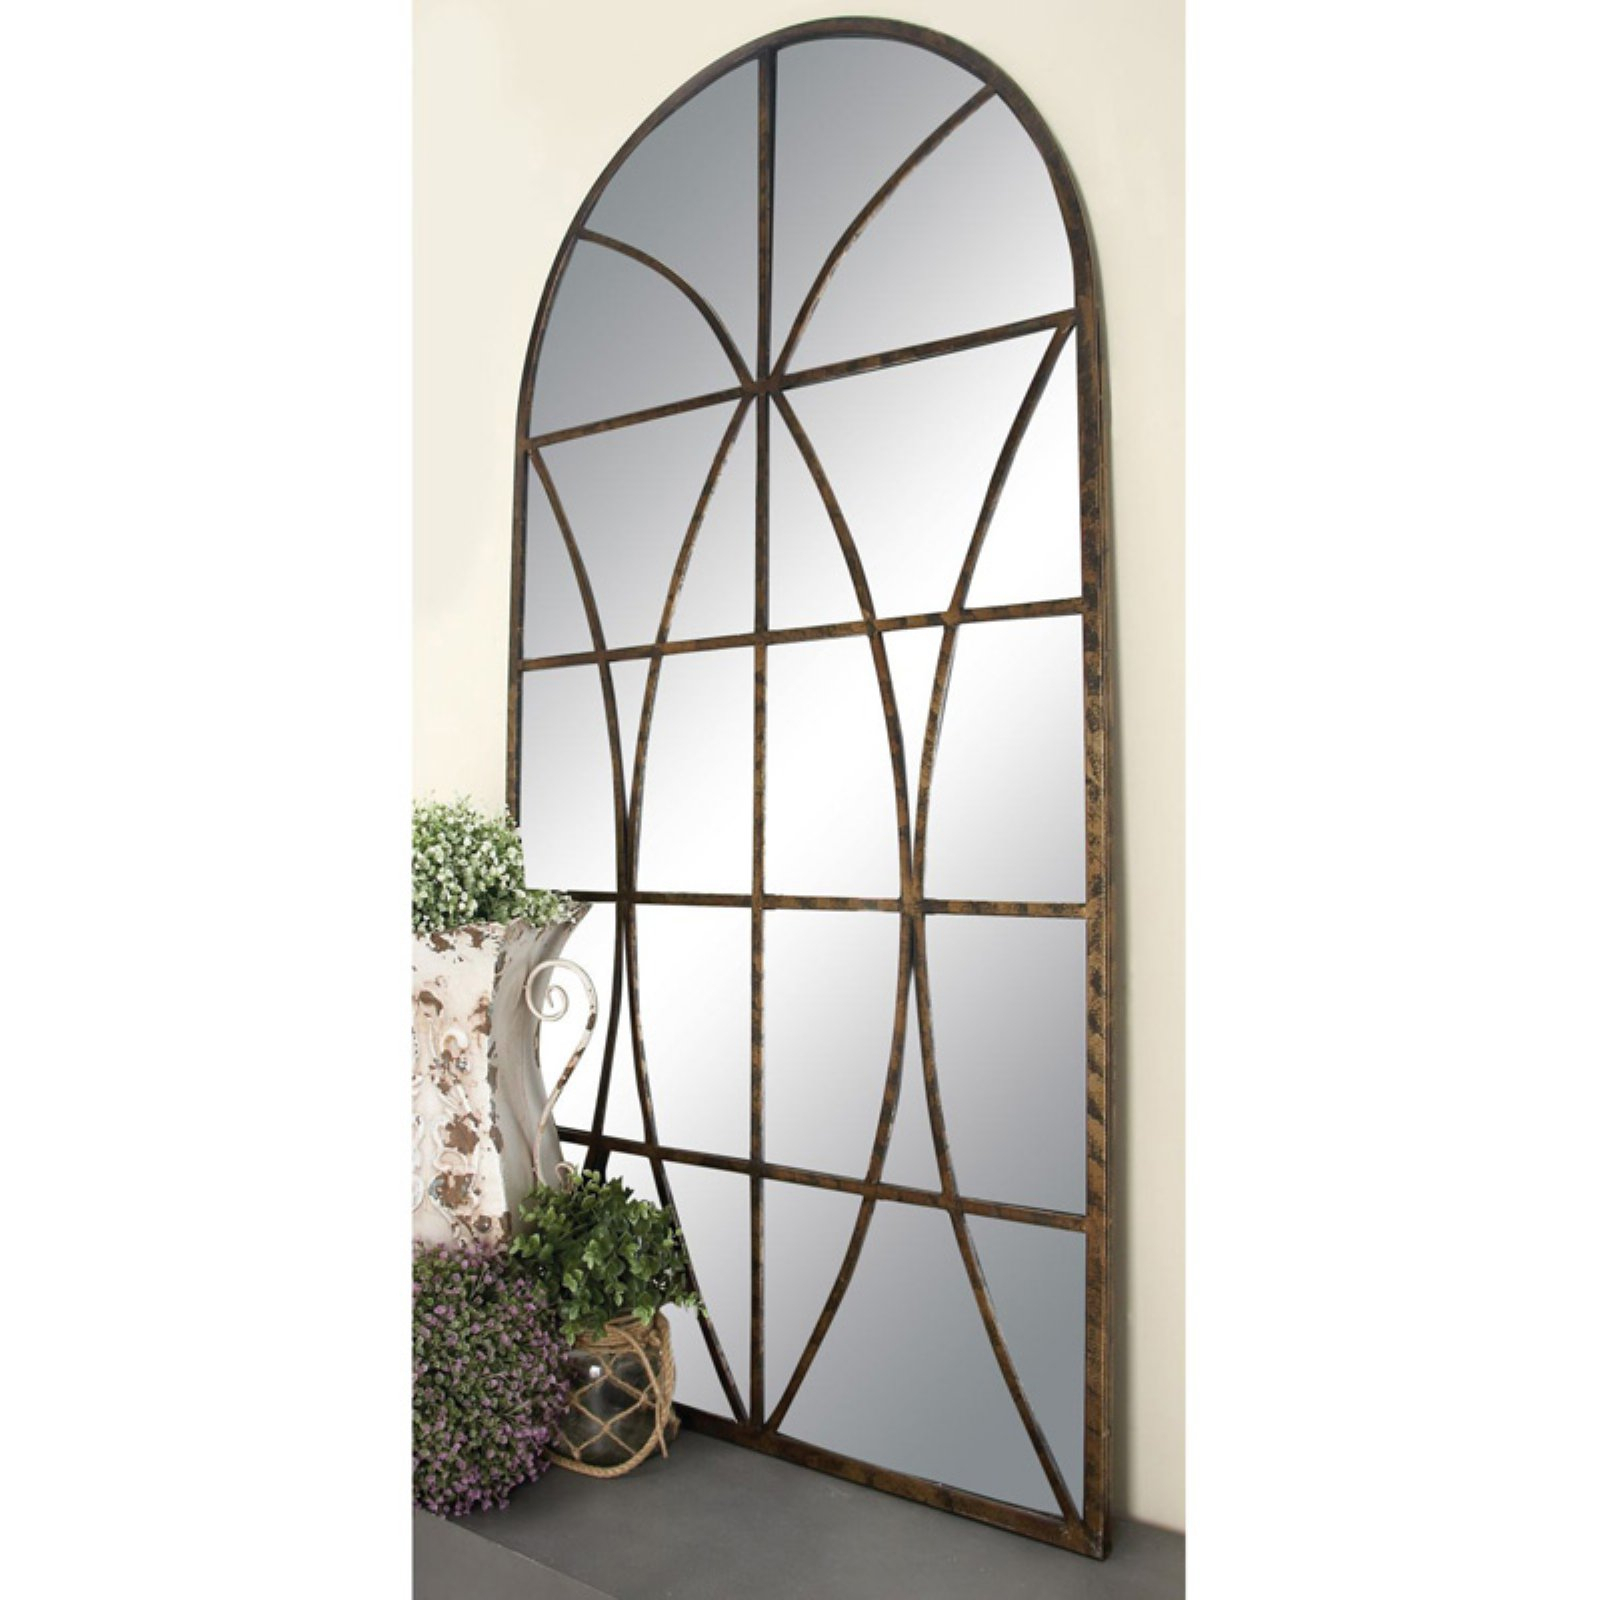 Decmode Metal And Wood Window Pane Arch Mirror, Brown Pertaining To Metal Arch Window Wall Mirrors (Image 5 of 20)